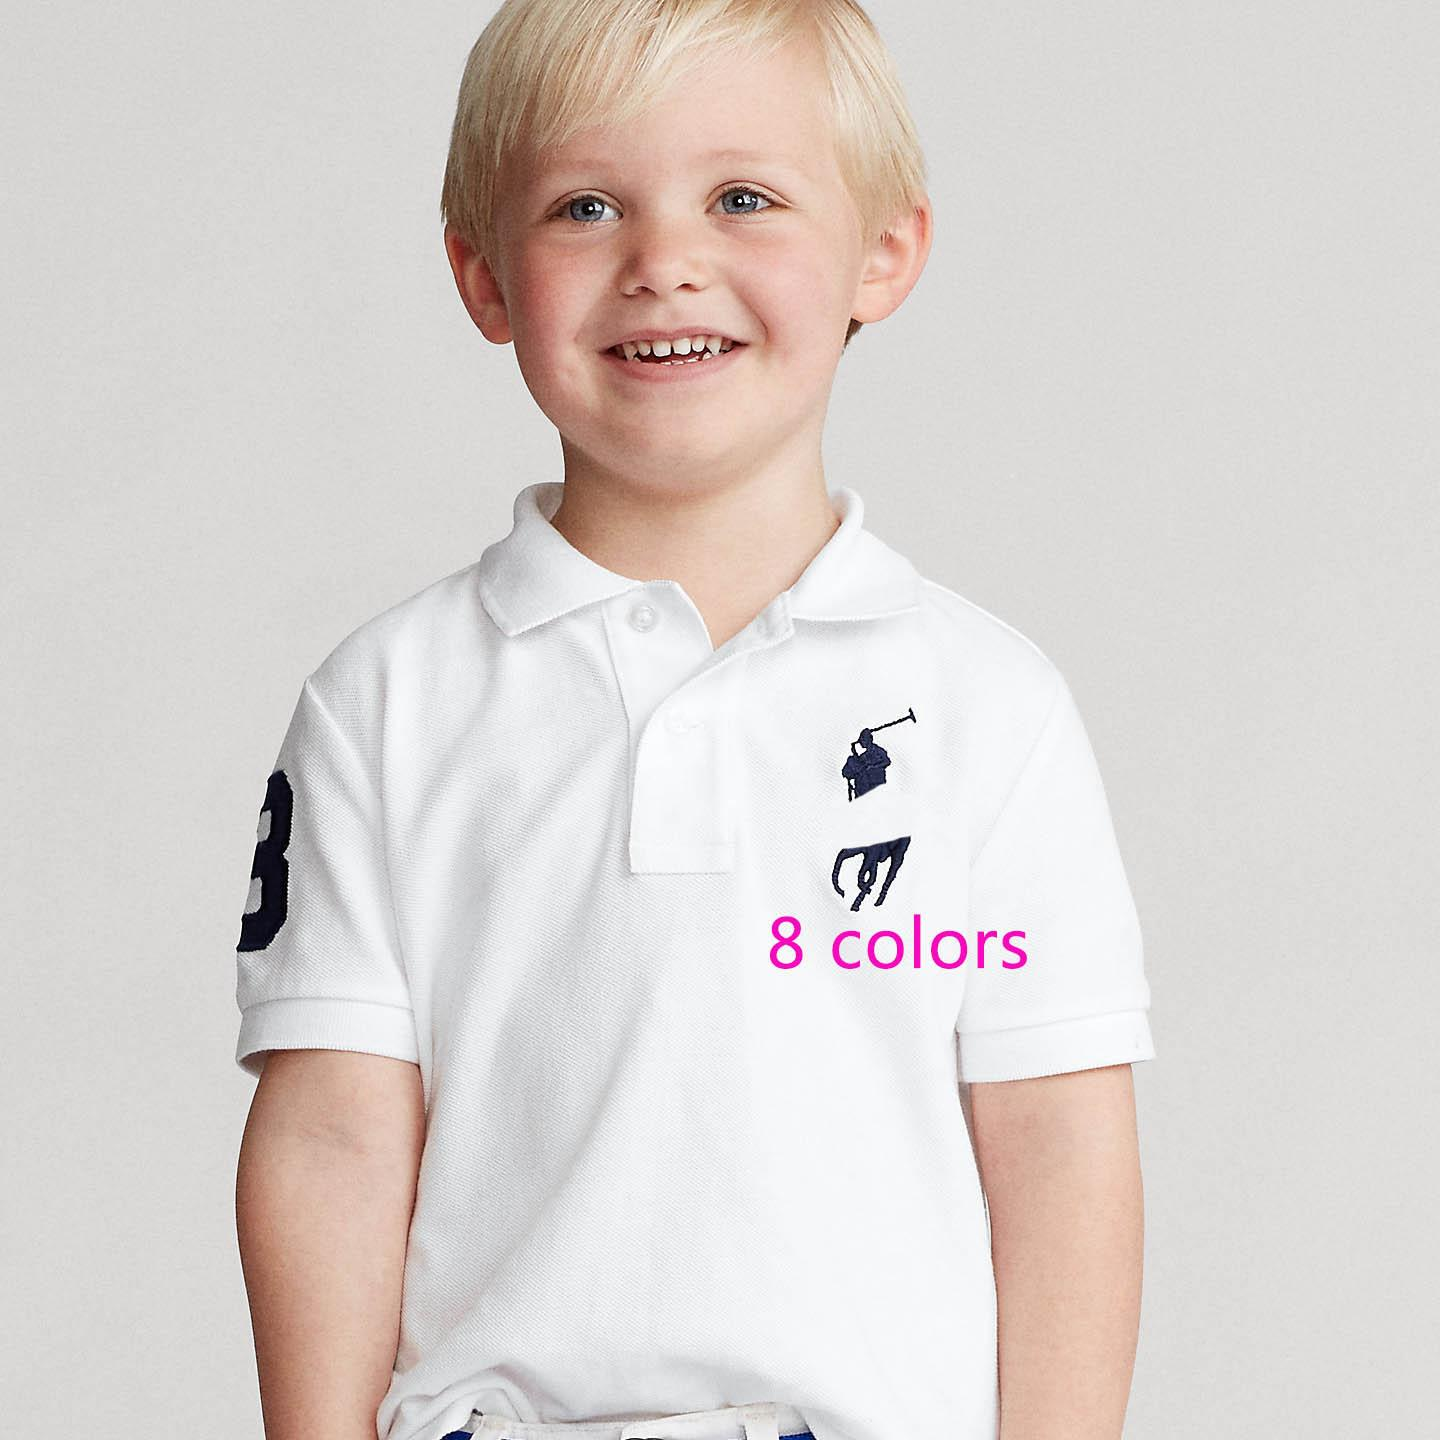 Enfants Polos T-shirt Summer Boy Girl confortable Top Angleterre Style Classic Baby Polo Teesclothing Solide Solide 8 Couleurs T-shirts